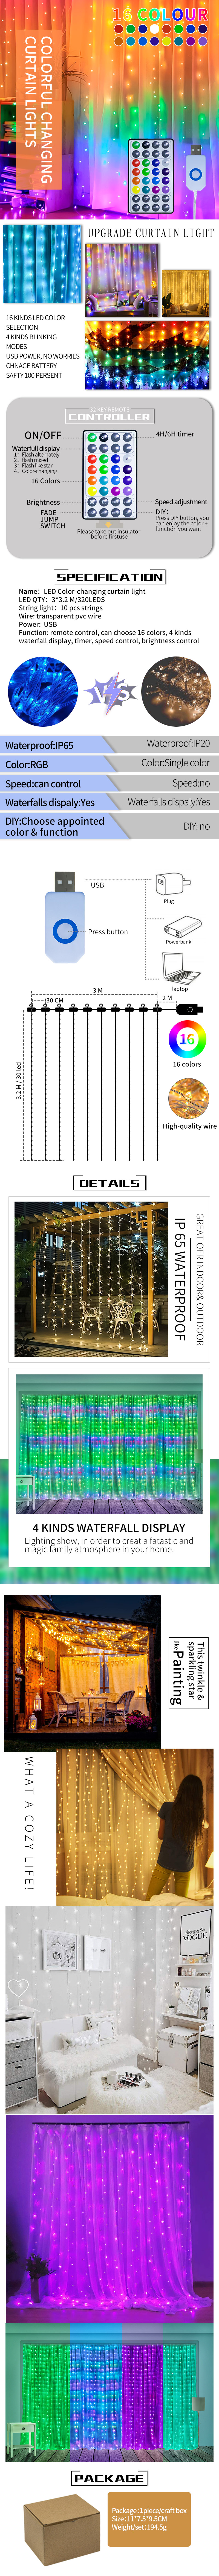 300LEDS Flashing Curtain Light RGB Waterfall Modes Wall Fairy Lights LED window Curtain String Light